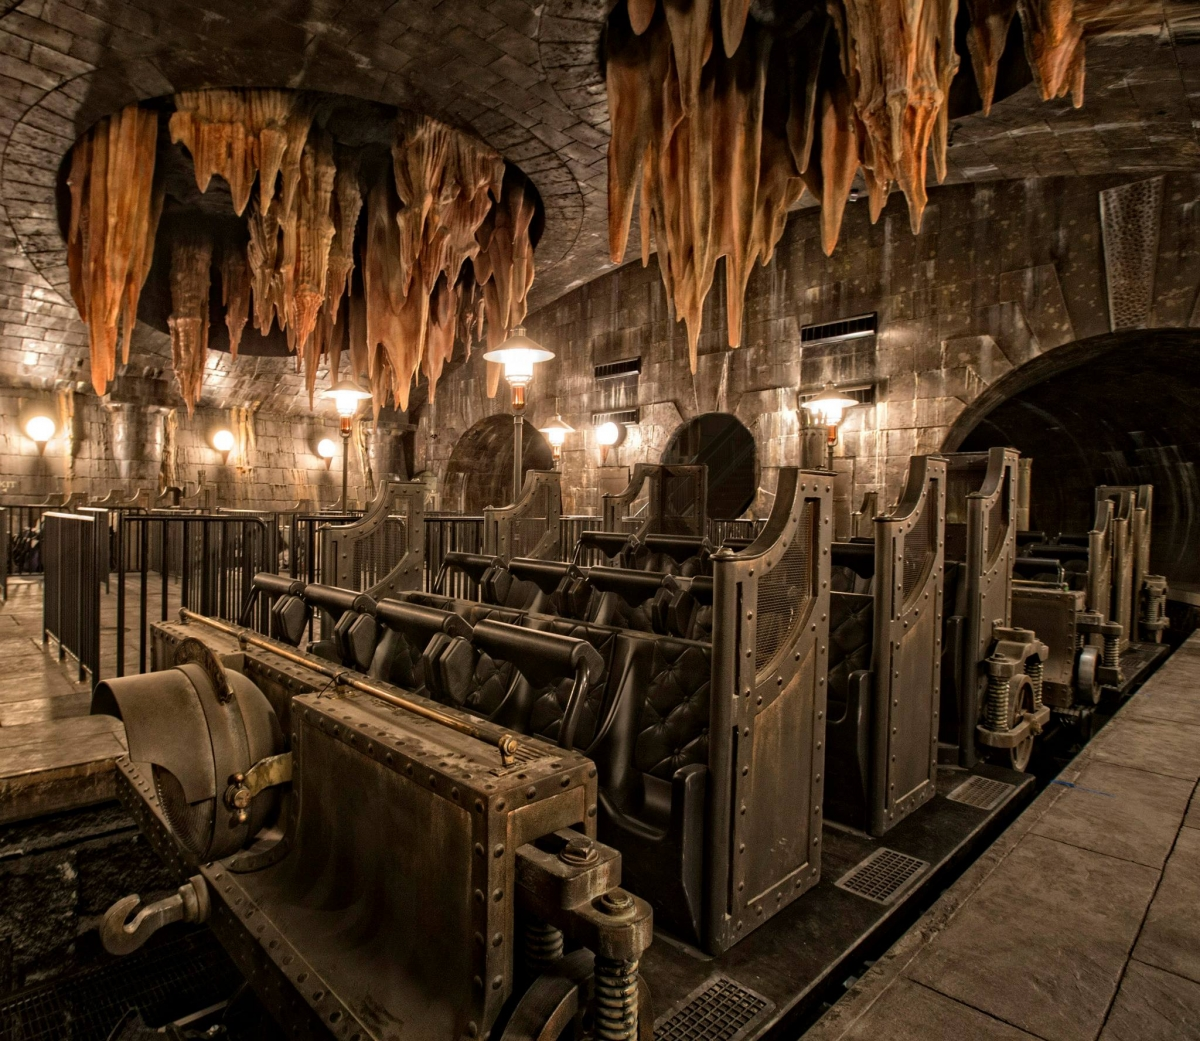 Fans will get to experience the exhilaration of travelling in a Gringotts mine cart to the bank vaults